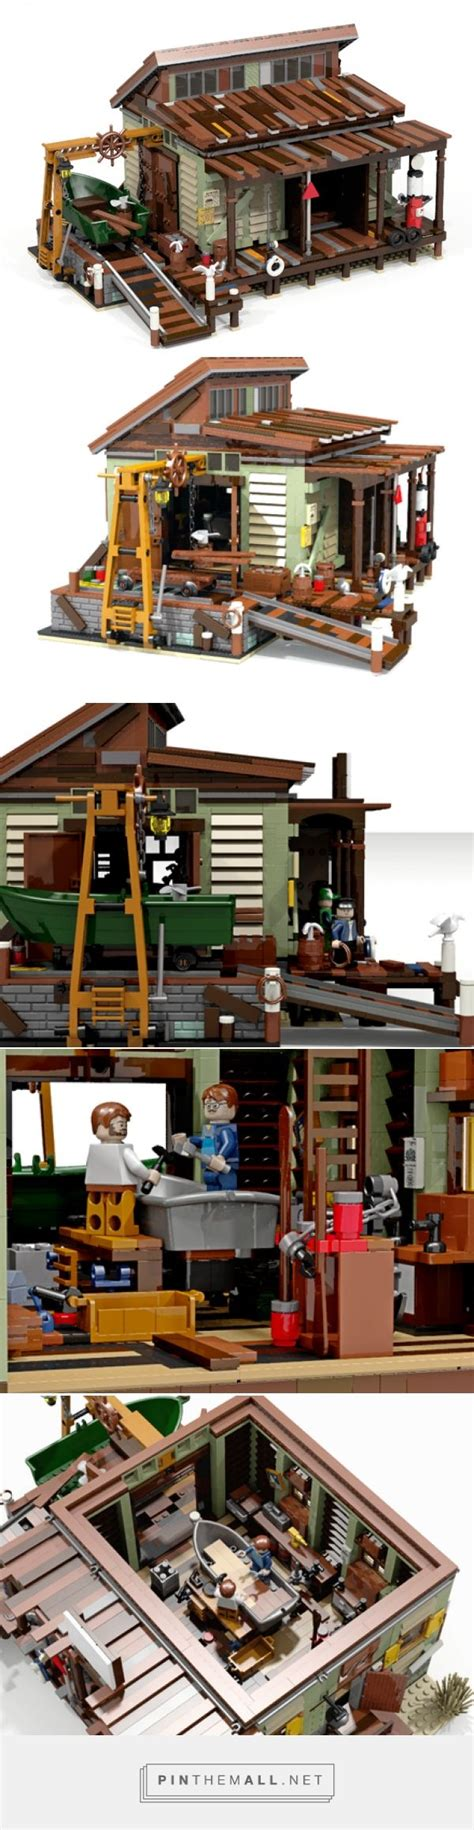 lego boat repair shop 1000 images about lego water theme on pinterest fishing